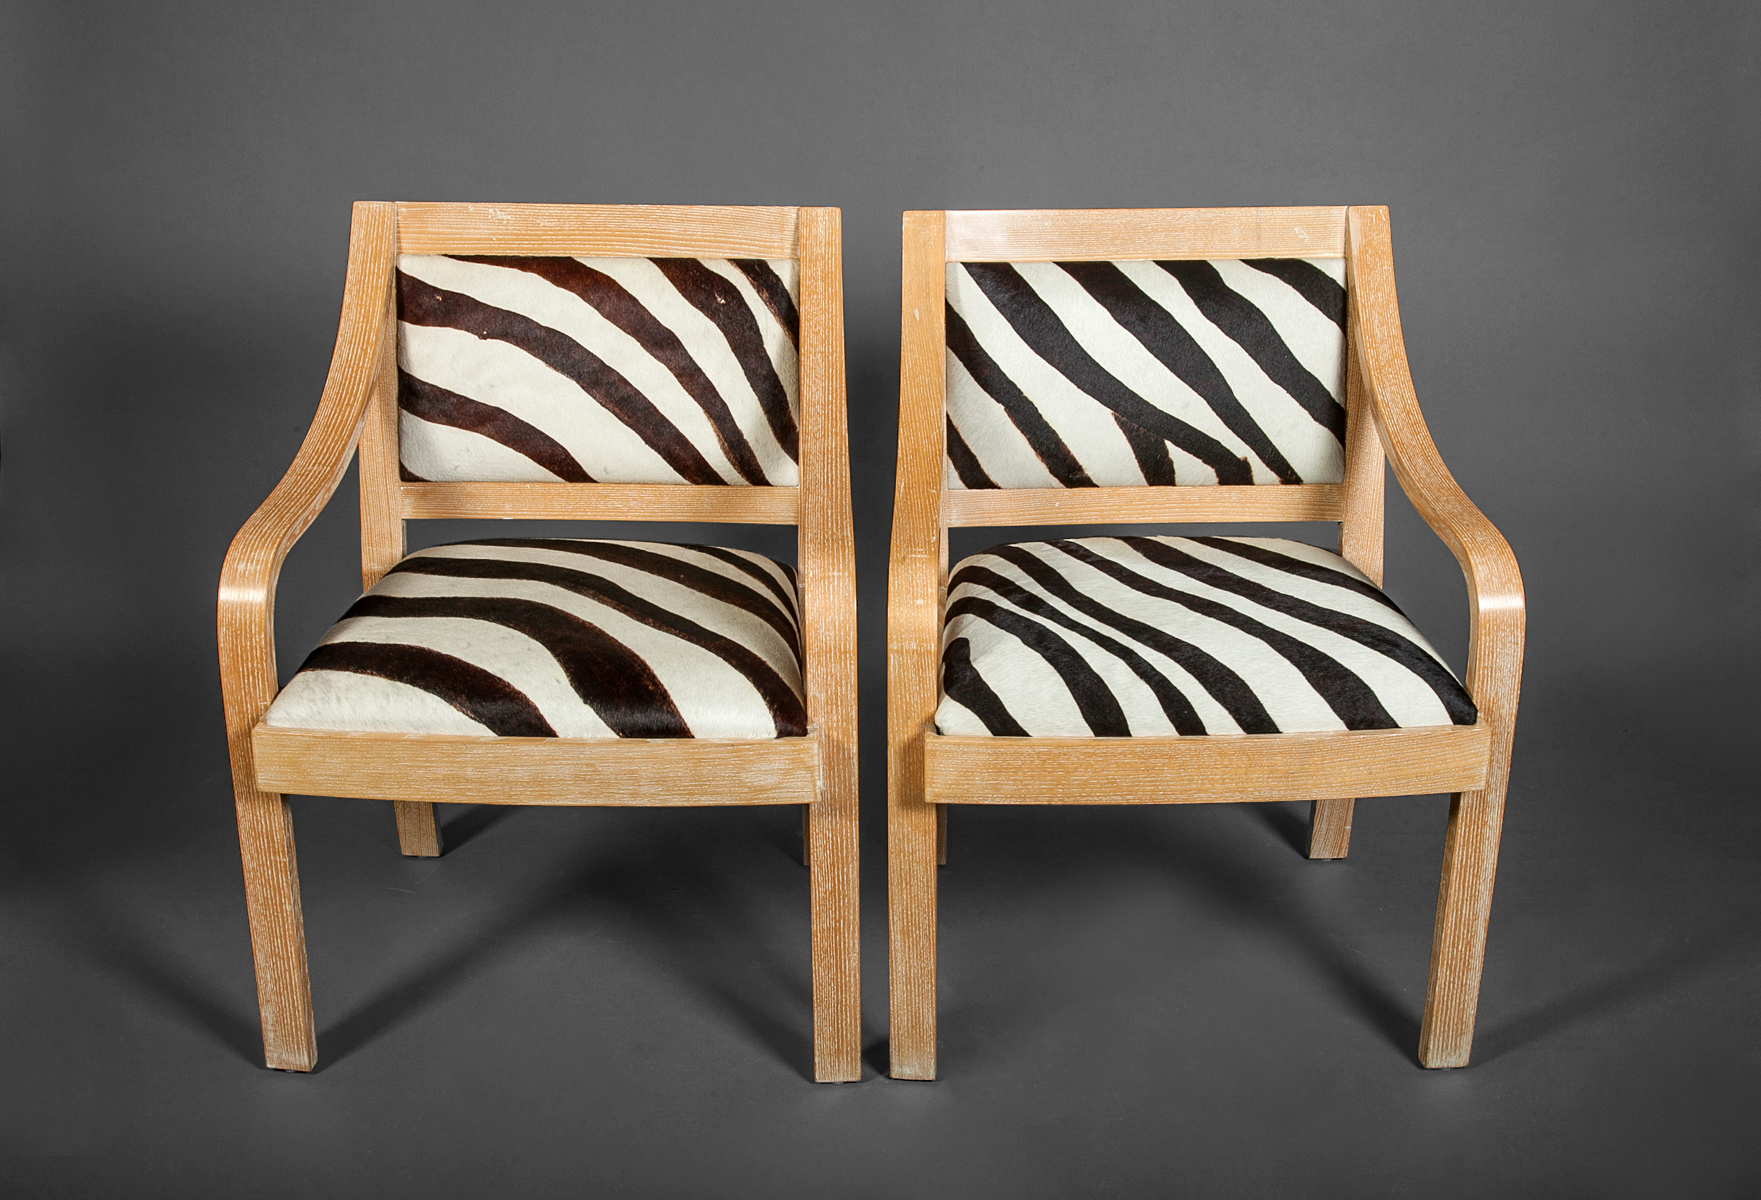 Pair of Zebra Chairs